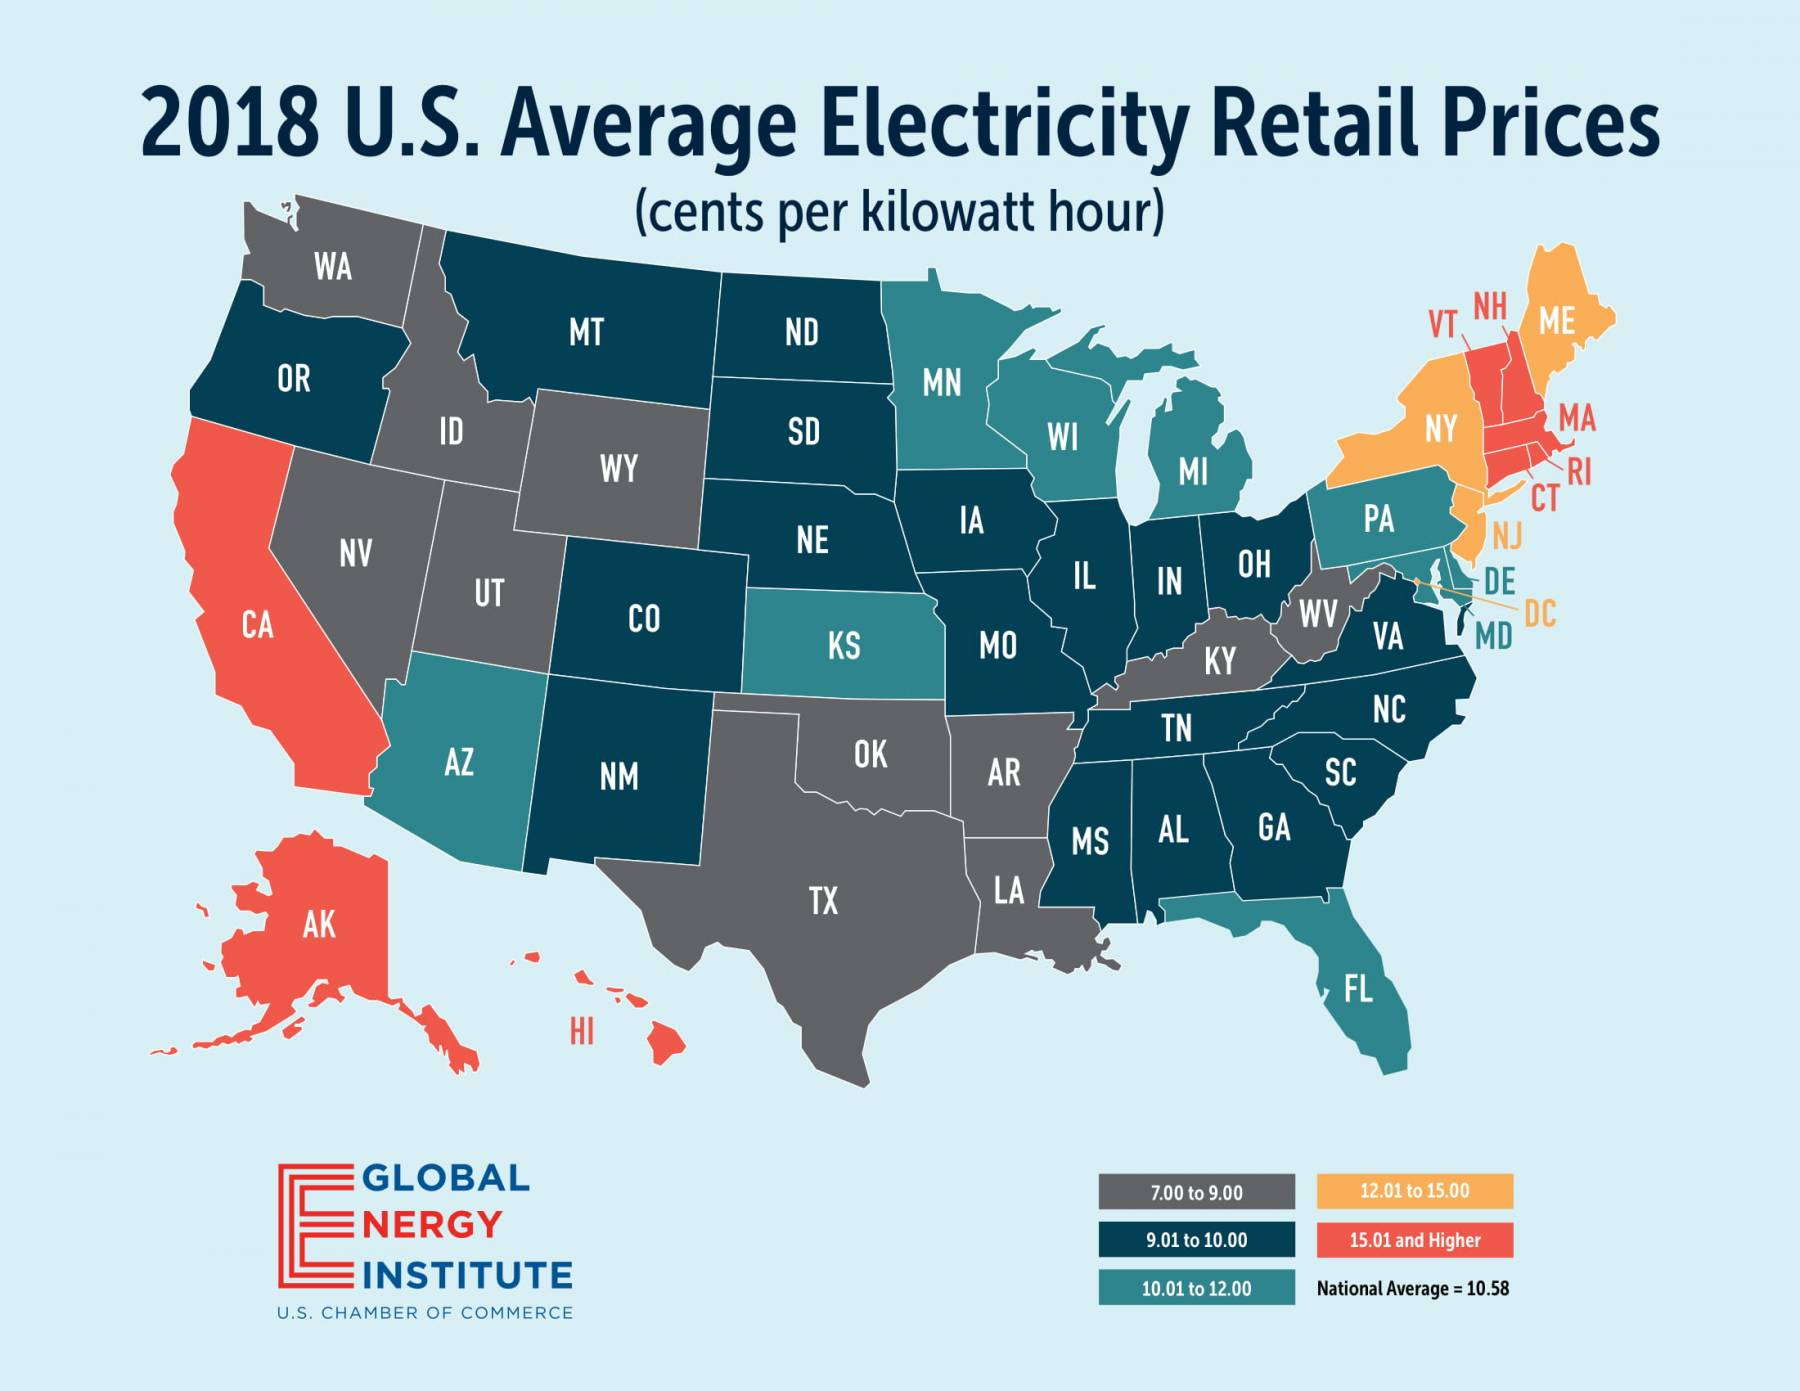 Average Electricity Retail Prices | Global Energy Insute on i-70 toll kansas, brewster kansas, interstate 70 kansas, detailed map kansas, haven kansas, joy land amusement park kansas, atchison county kansas, lake wabaunsee kansas, special olympics kansas, grainfield kansas, road map kansas, brown county kansas, wabaunsee county kansas, haskell county kansas, best of kansas, world map kansas, map of kansas, fracking map kansas, names of towns in kansas,